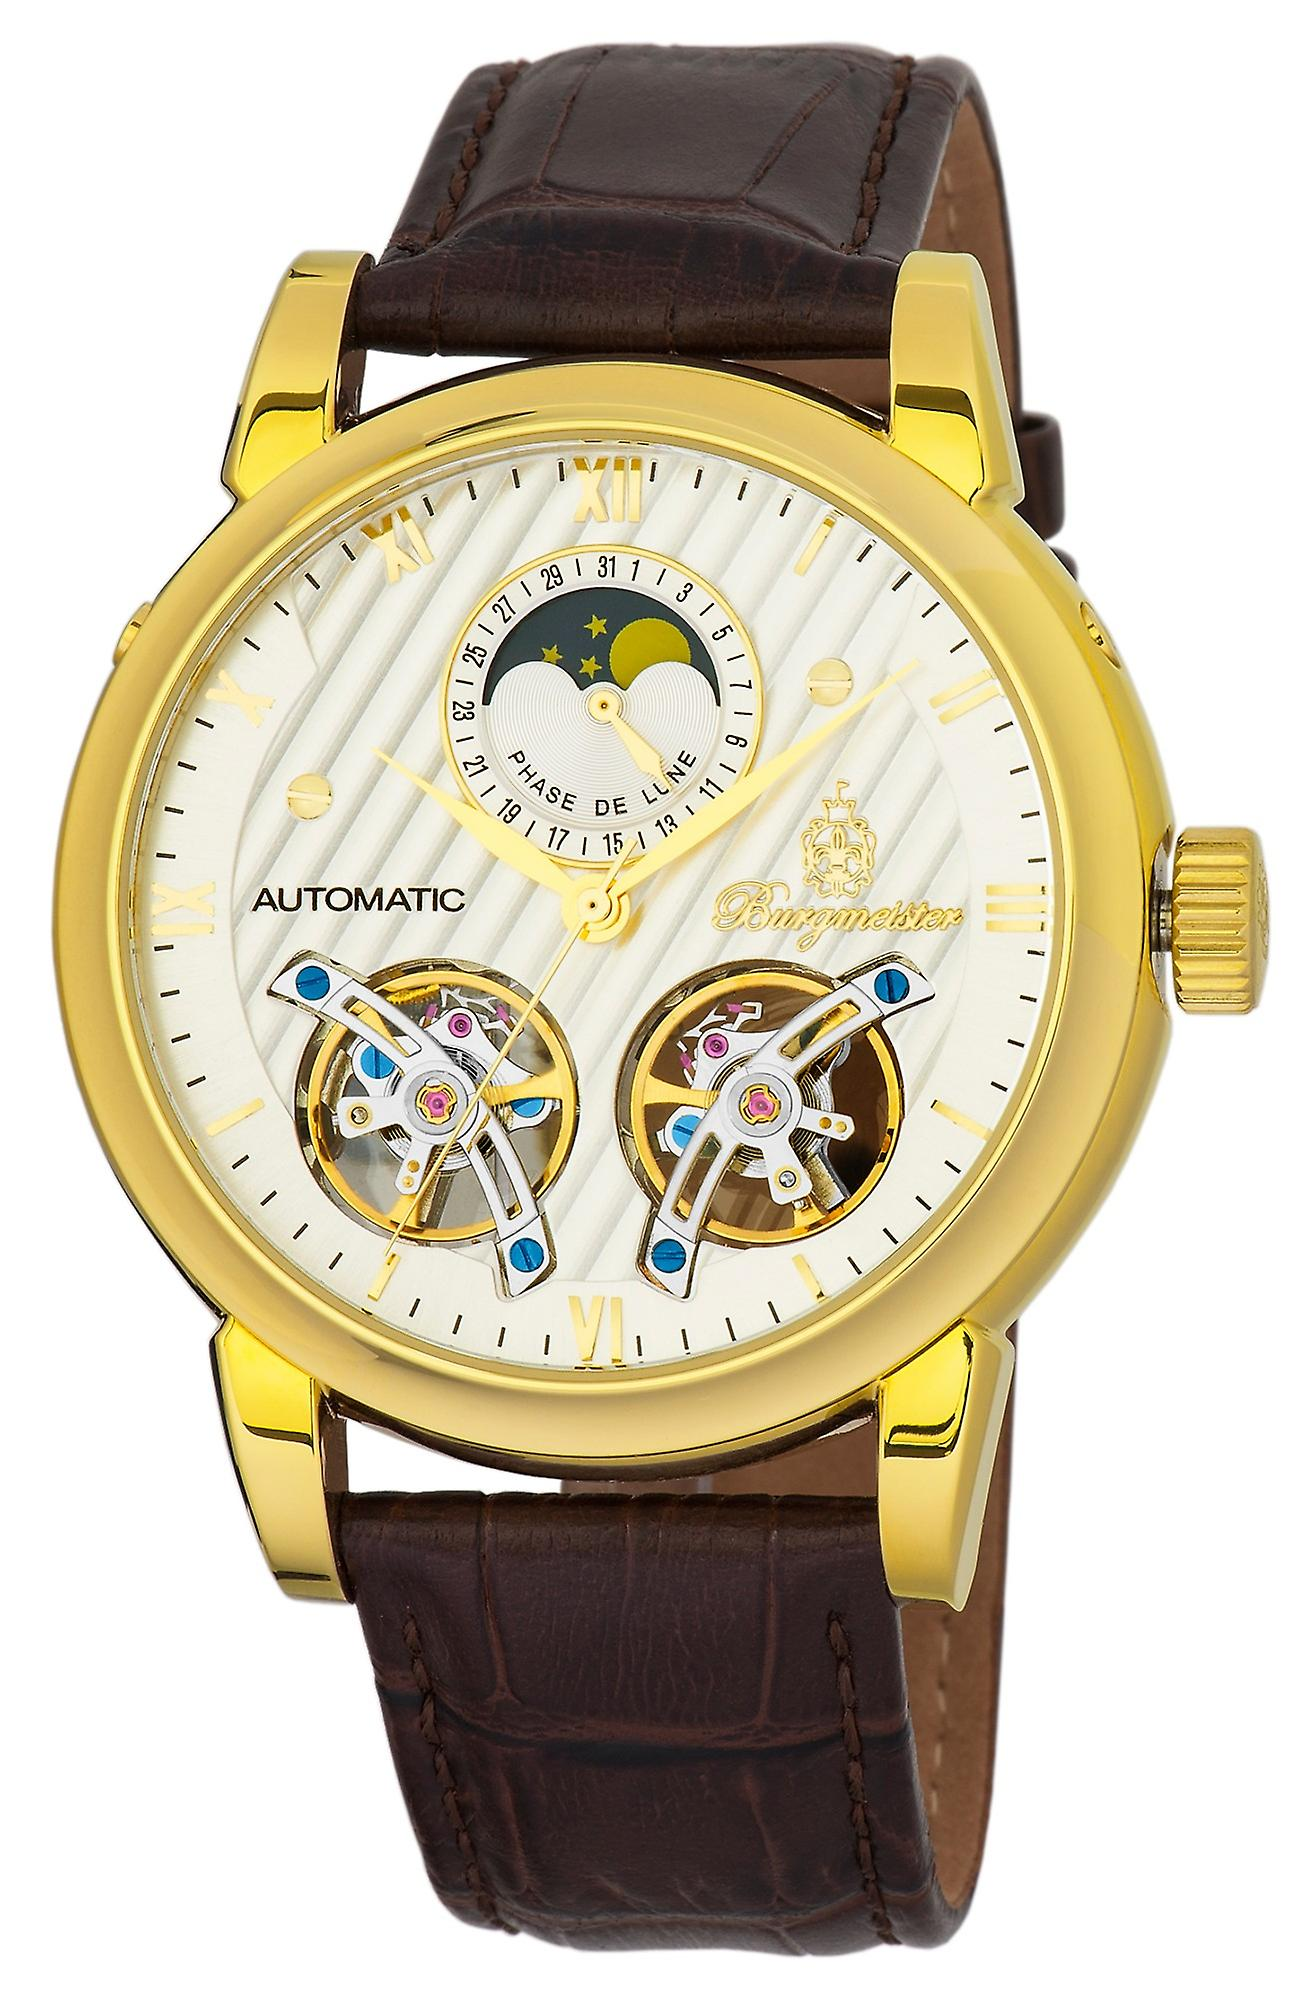 Burgmeister BM238-285 Thornton, Gents automatic watch, Analogue display - Water resistant, Stylish leather strap, Classic men's watch